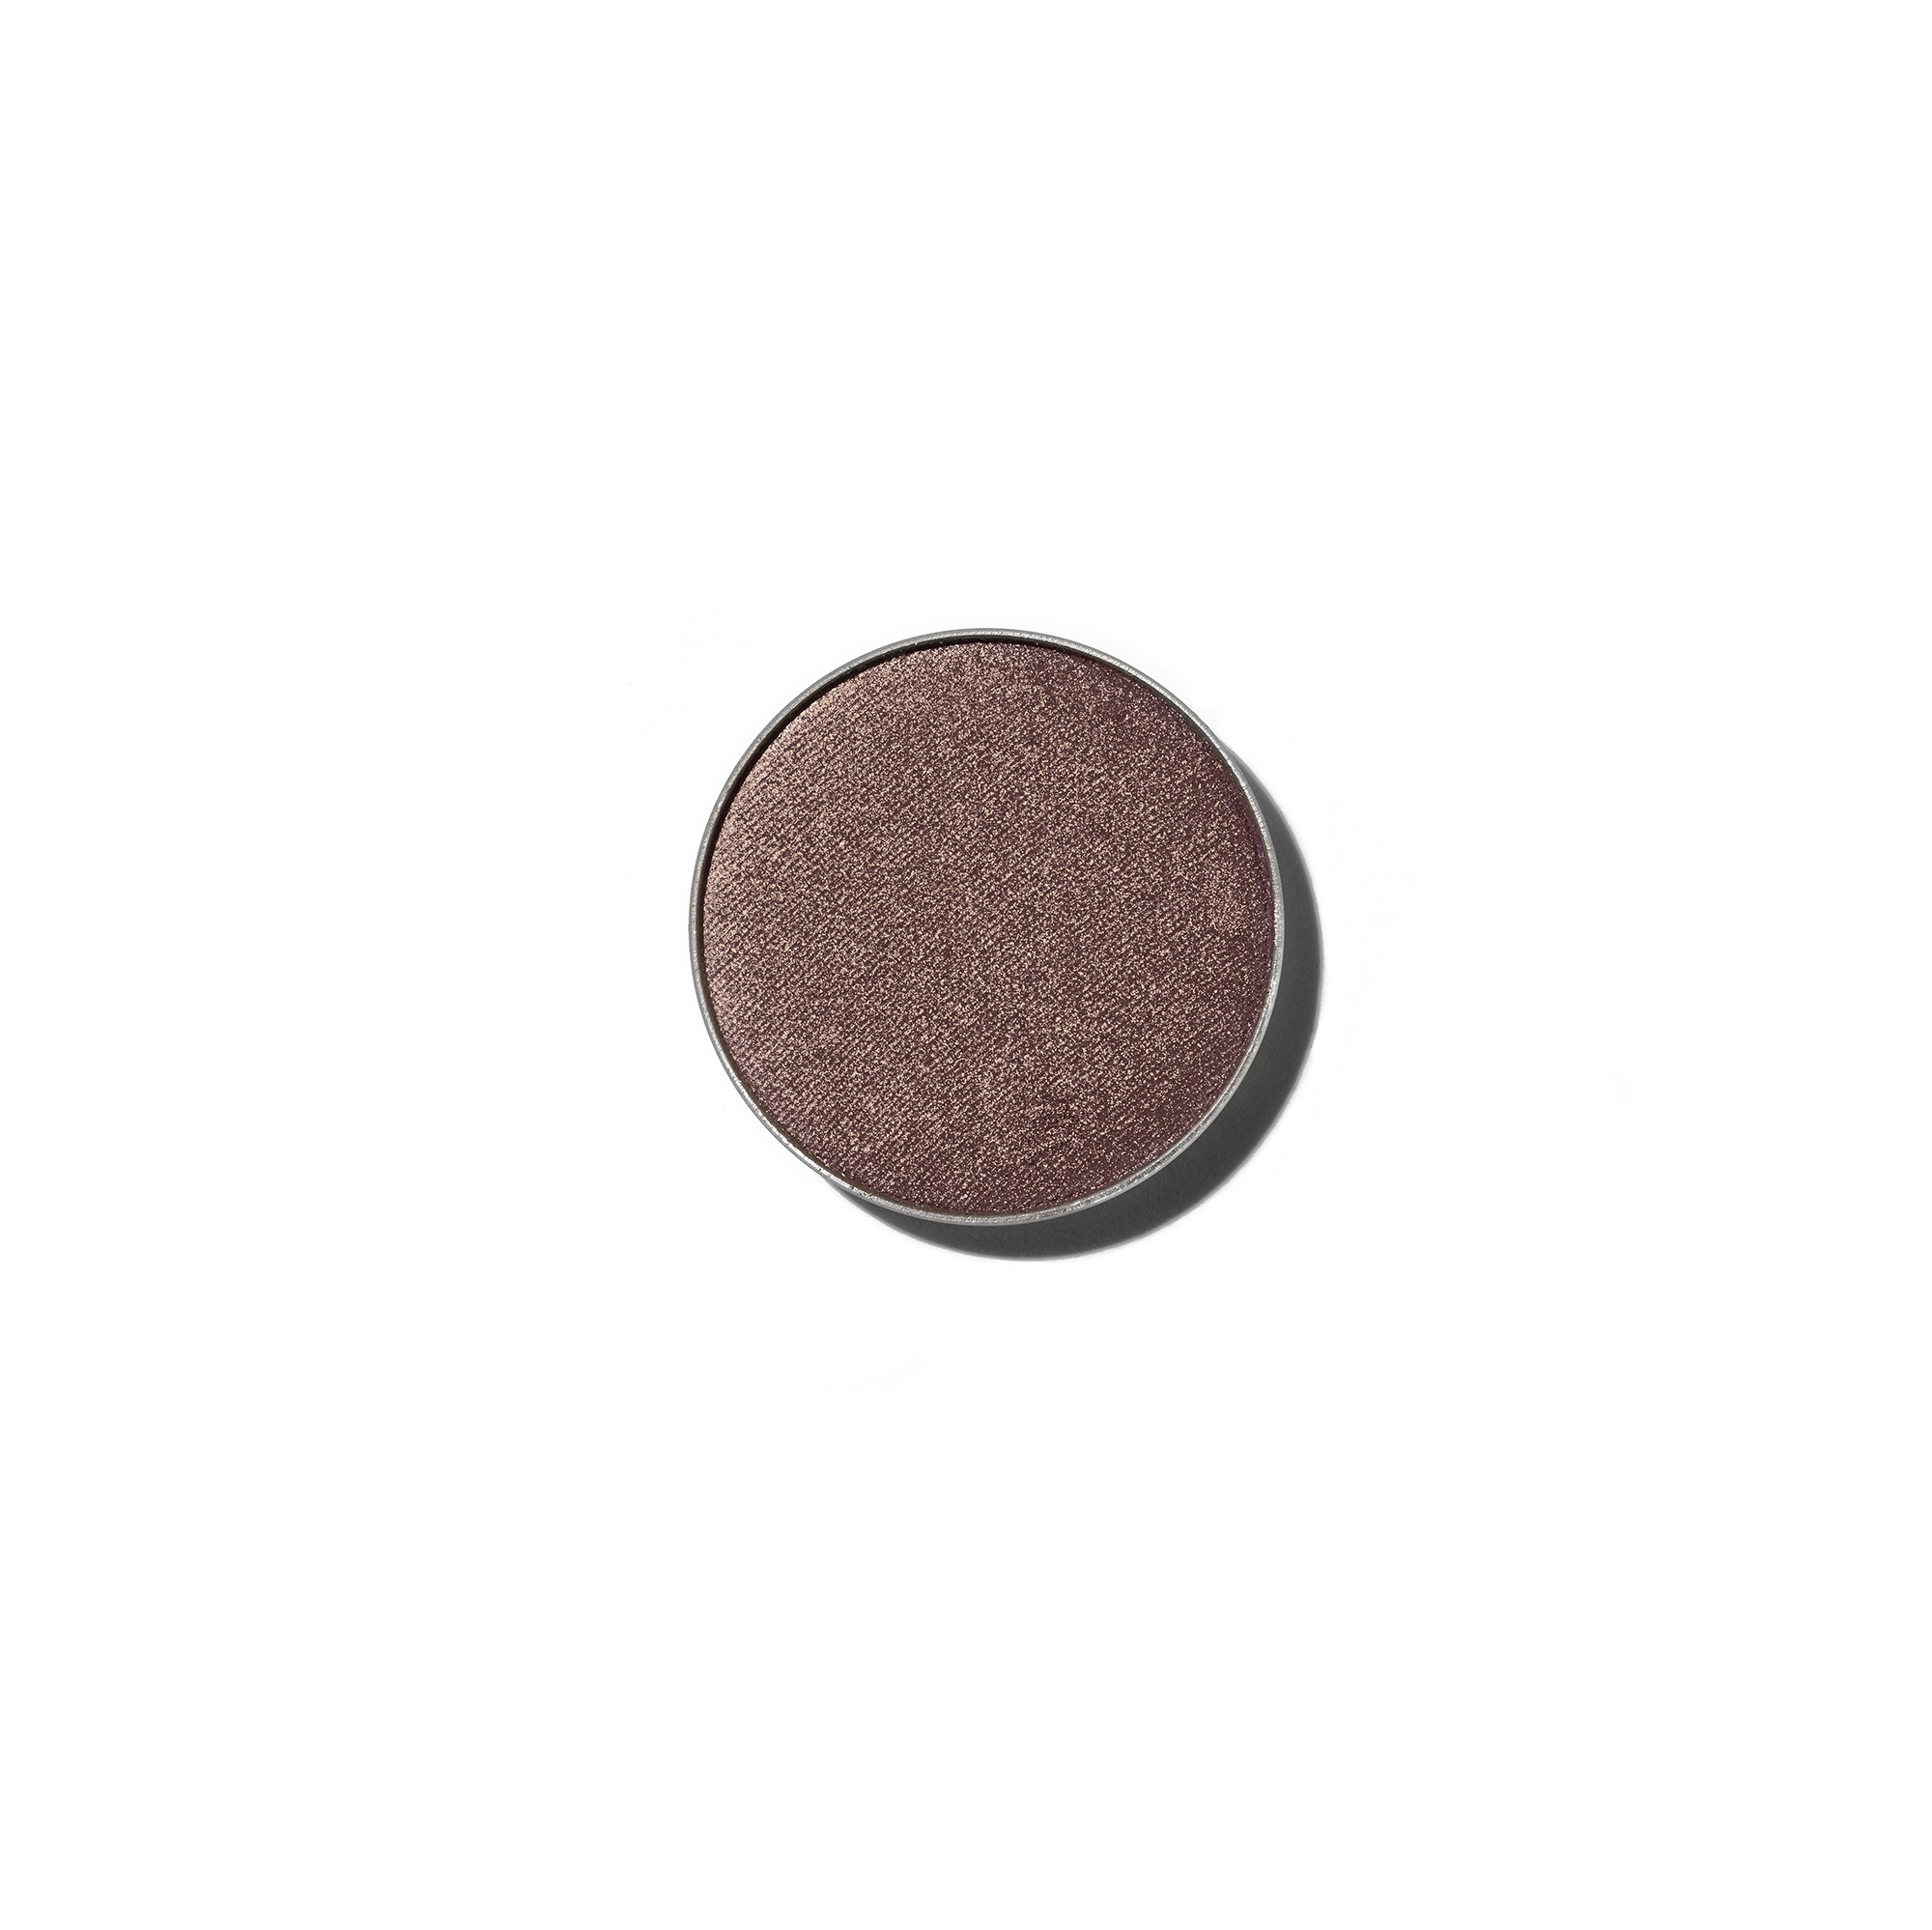 Eyeshadow Singles - Chocolate Crumble